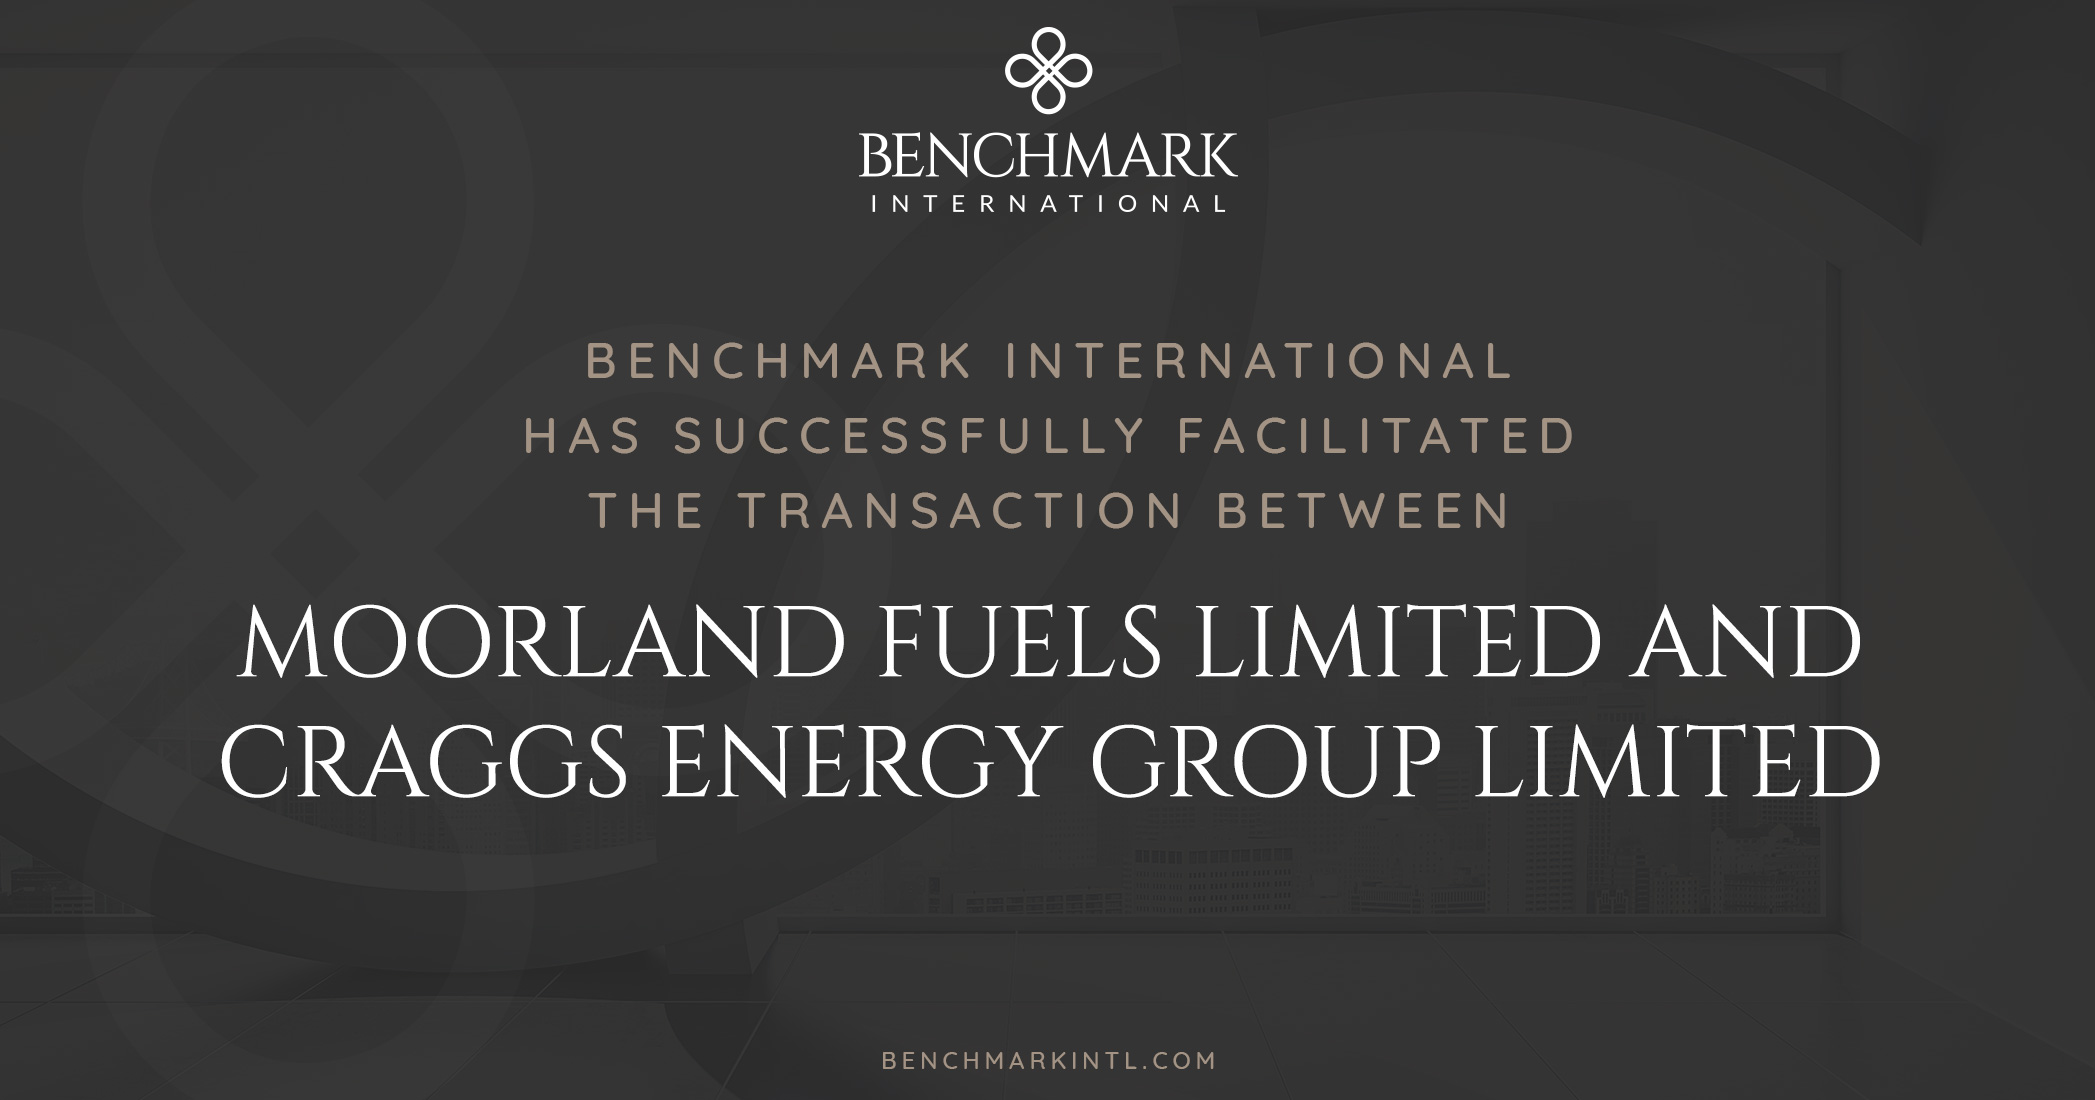 Benchmark International Successfully Facilitated the Transaction Between Moorland Fuels Limited and Craggs Energy Group Limited